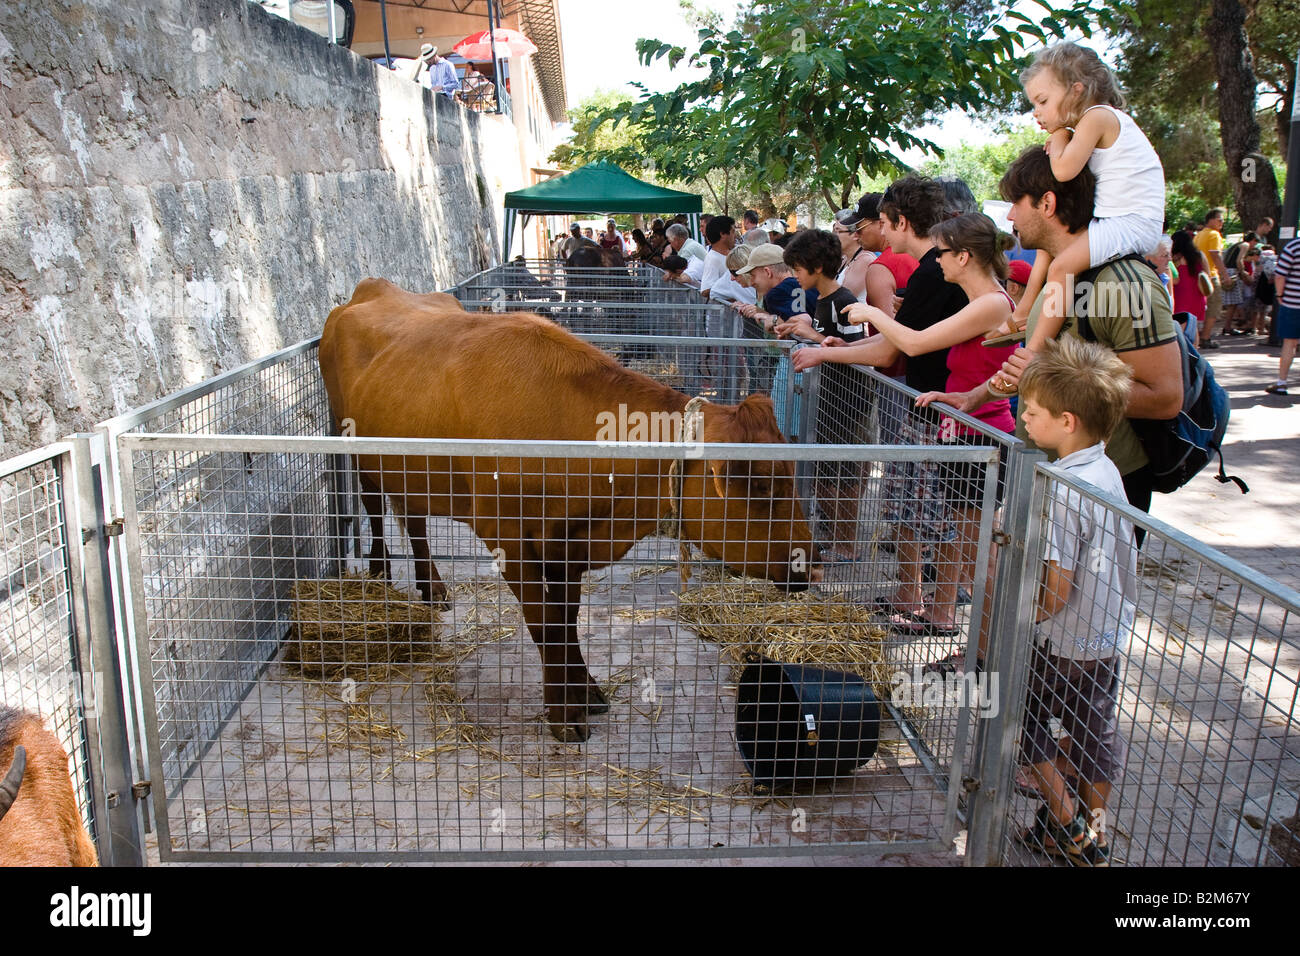 Steer for sale is seen in a cage at the farmer's market in Sineu, Majorca, Balearic Islands, Spain - Stock Image